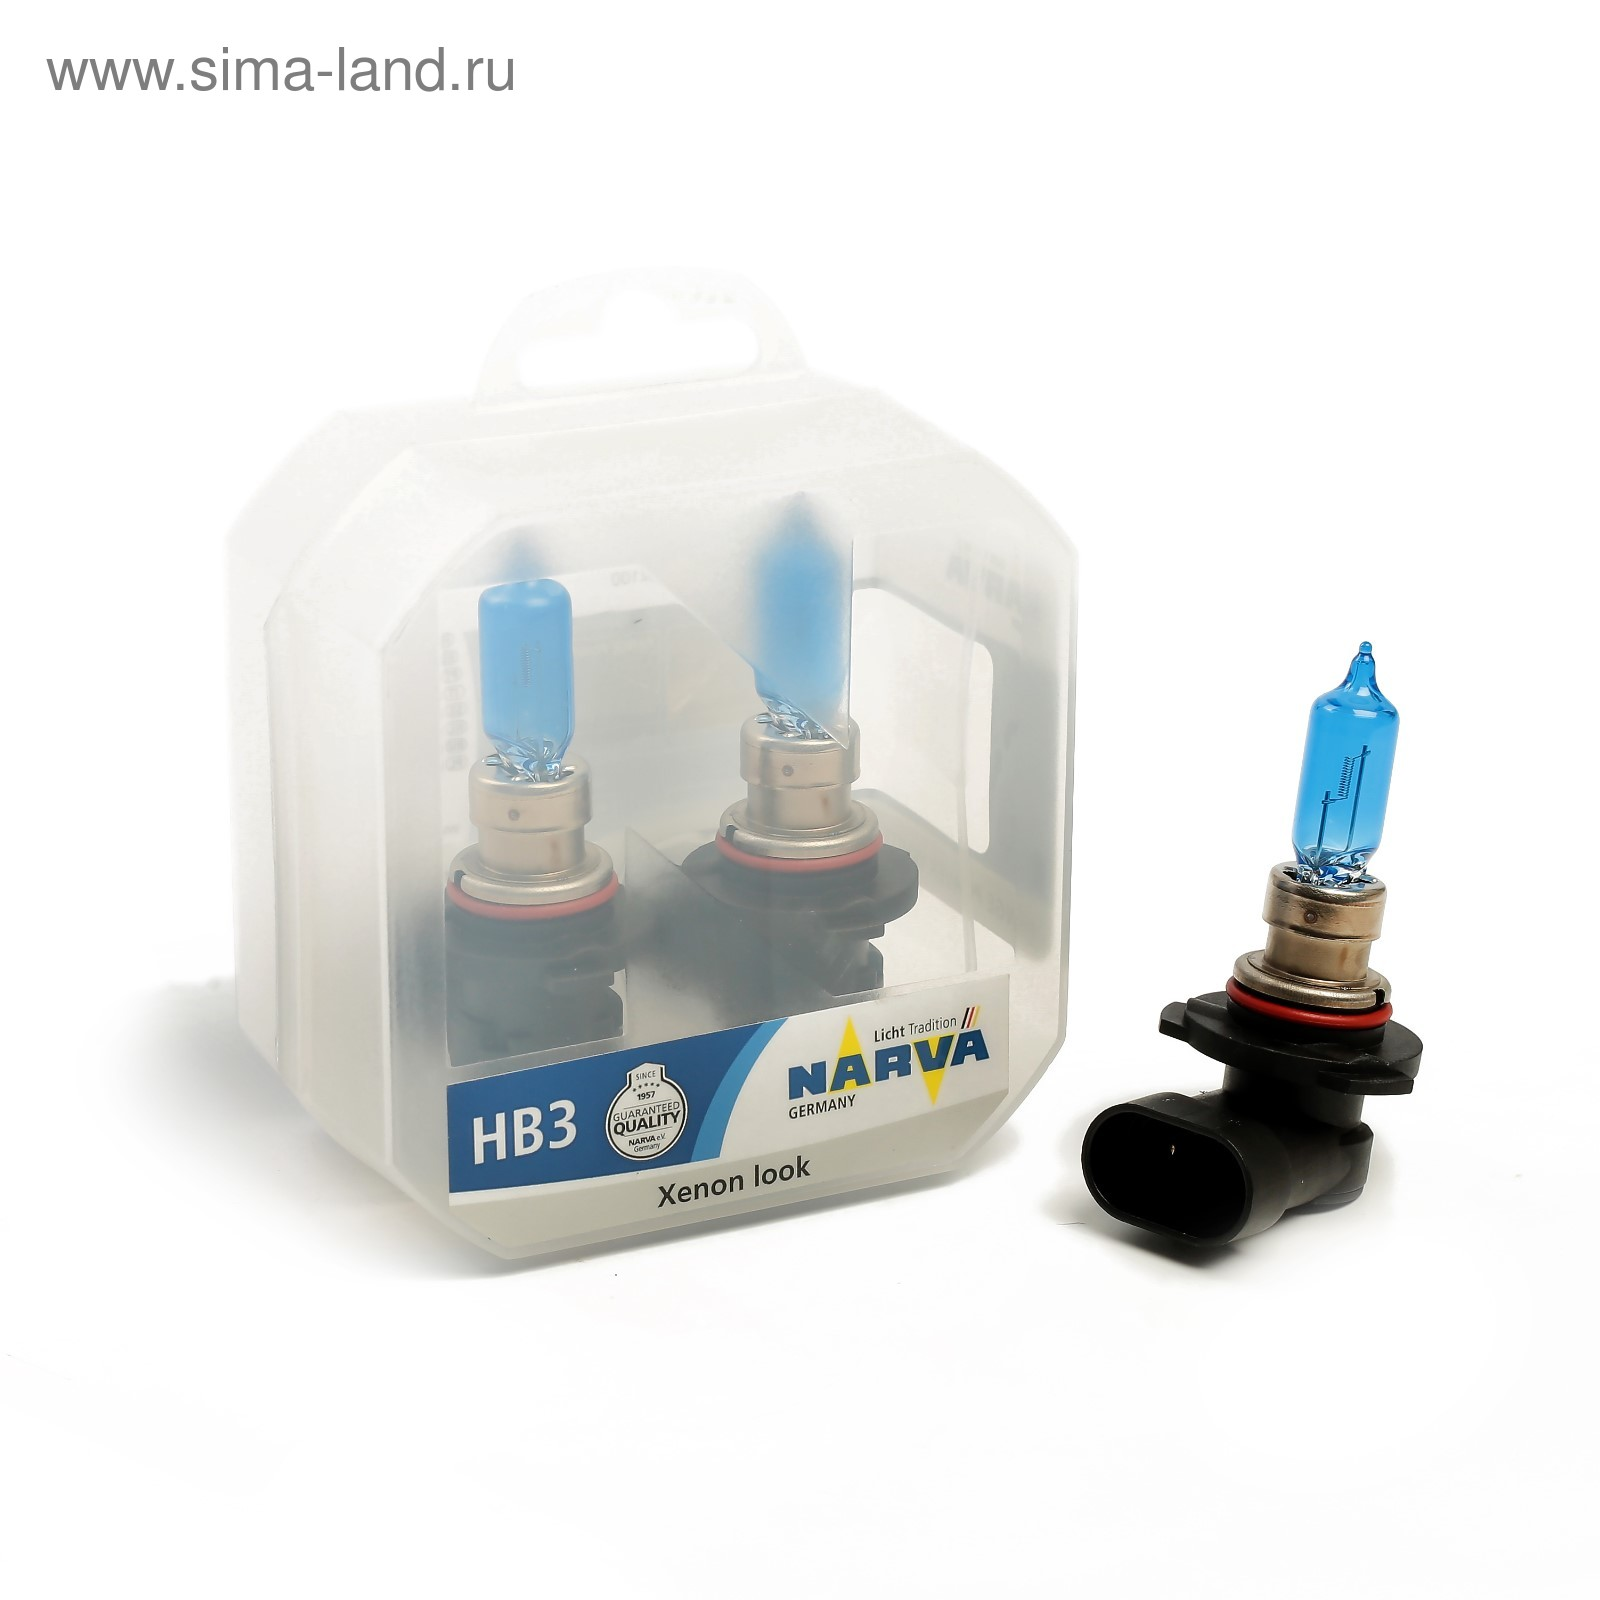 Автолампа NARVA RANGE POWER WHITE, HB3, 12 В, 65 Вт, 48625